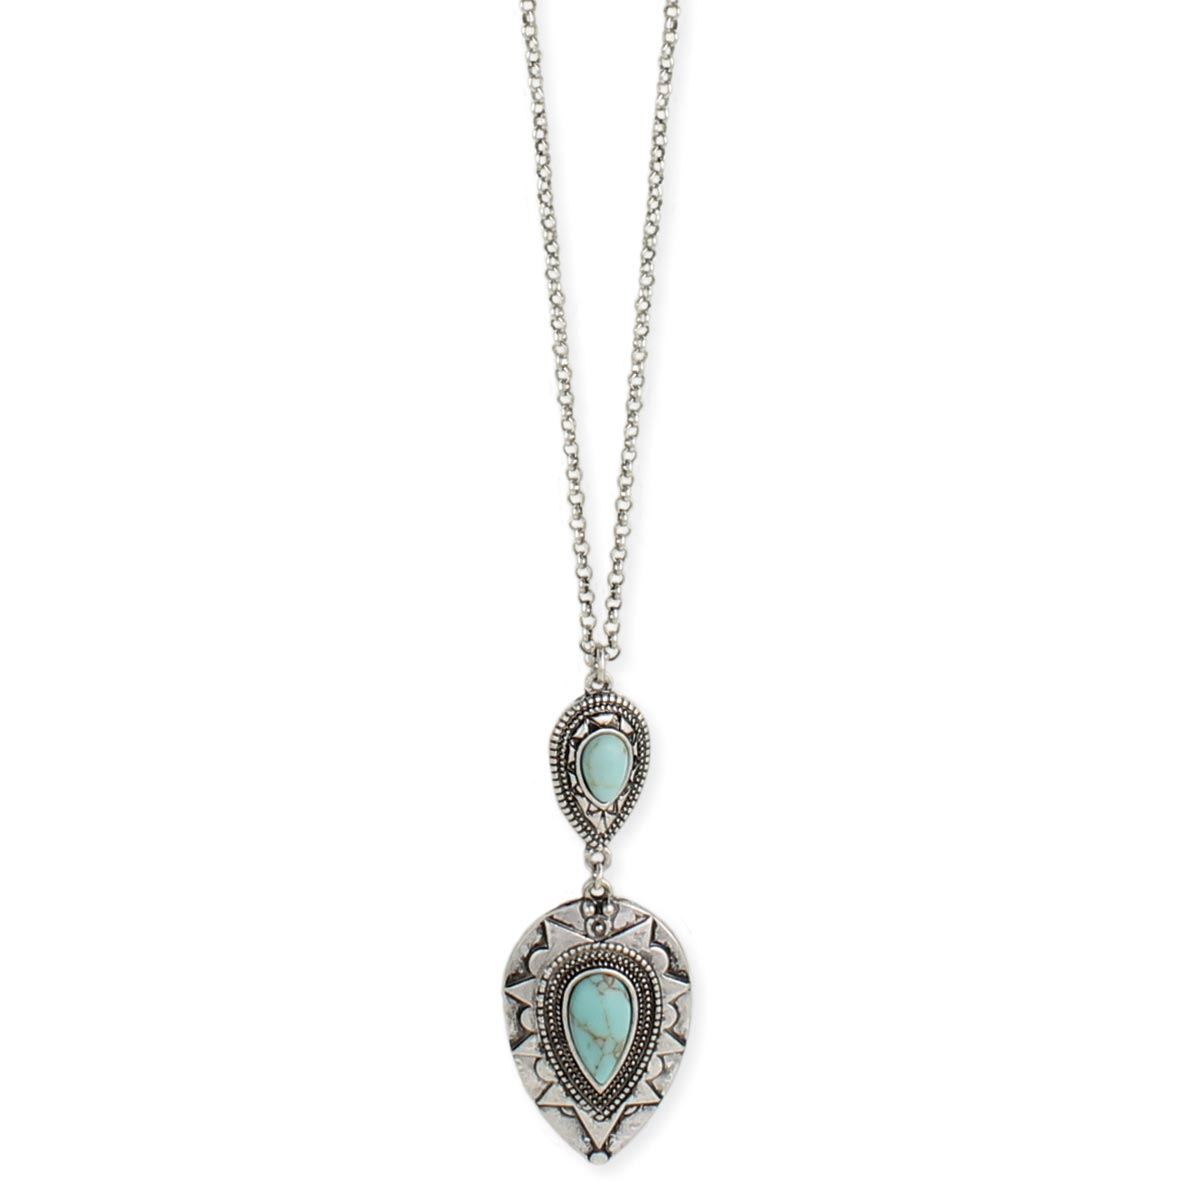 b30c57c29a86 Silver & Turquoise Teardrop Pendant Necklace. View Detailed Images 2 ...